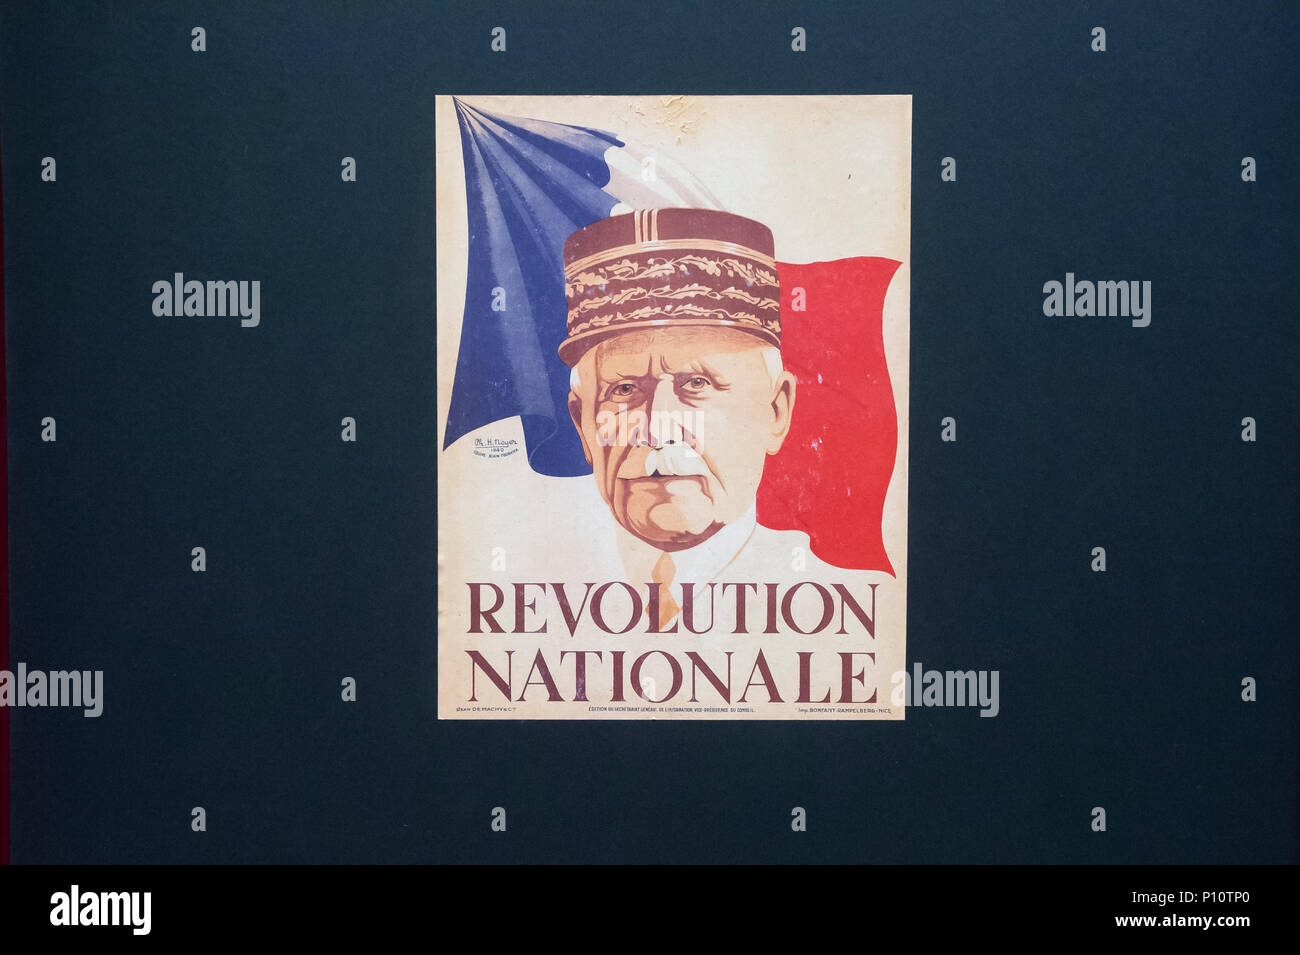 Philippe Petain as a part of exhibion in Museum of the Second World War in Gdansk, Poland. January 28th 2017  © Wojciech Strozyk / Alamy Stock Photo - Stock Image